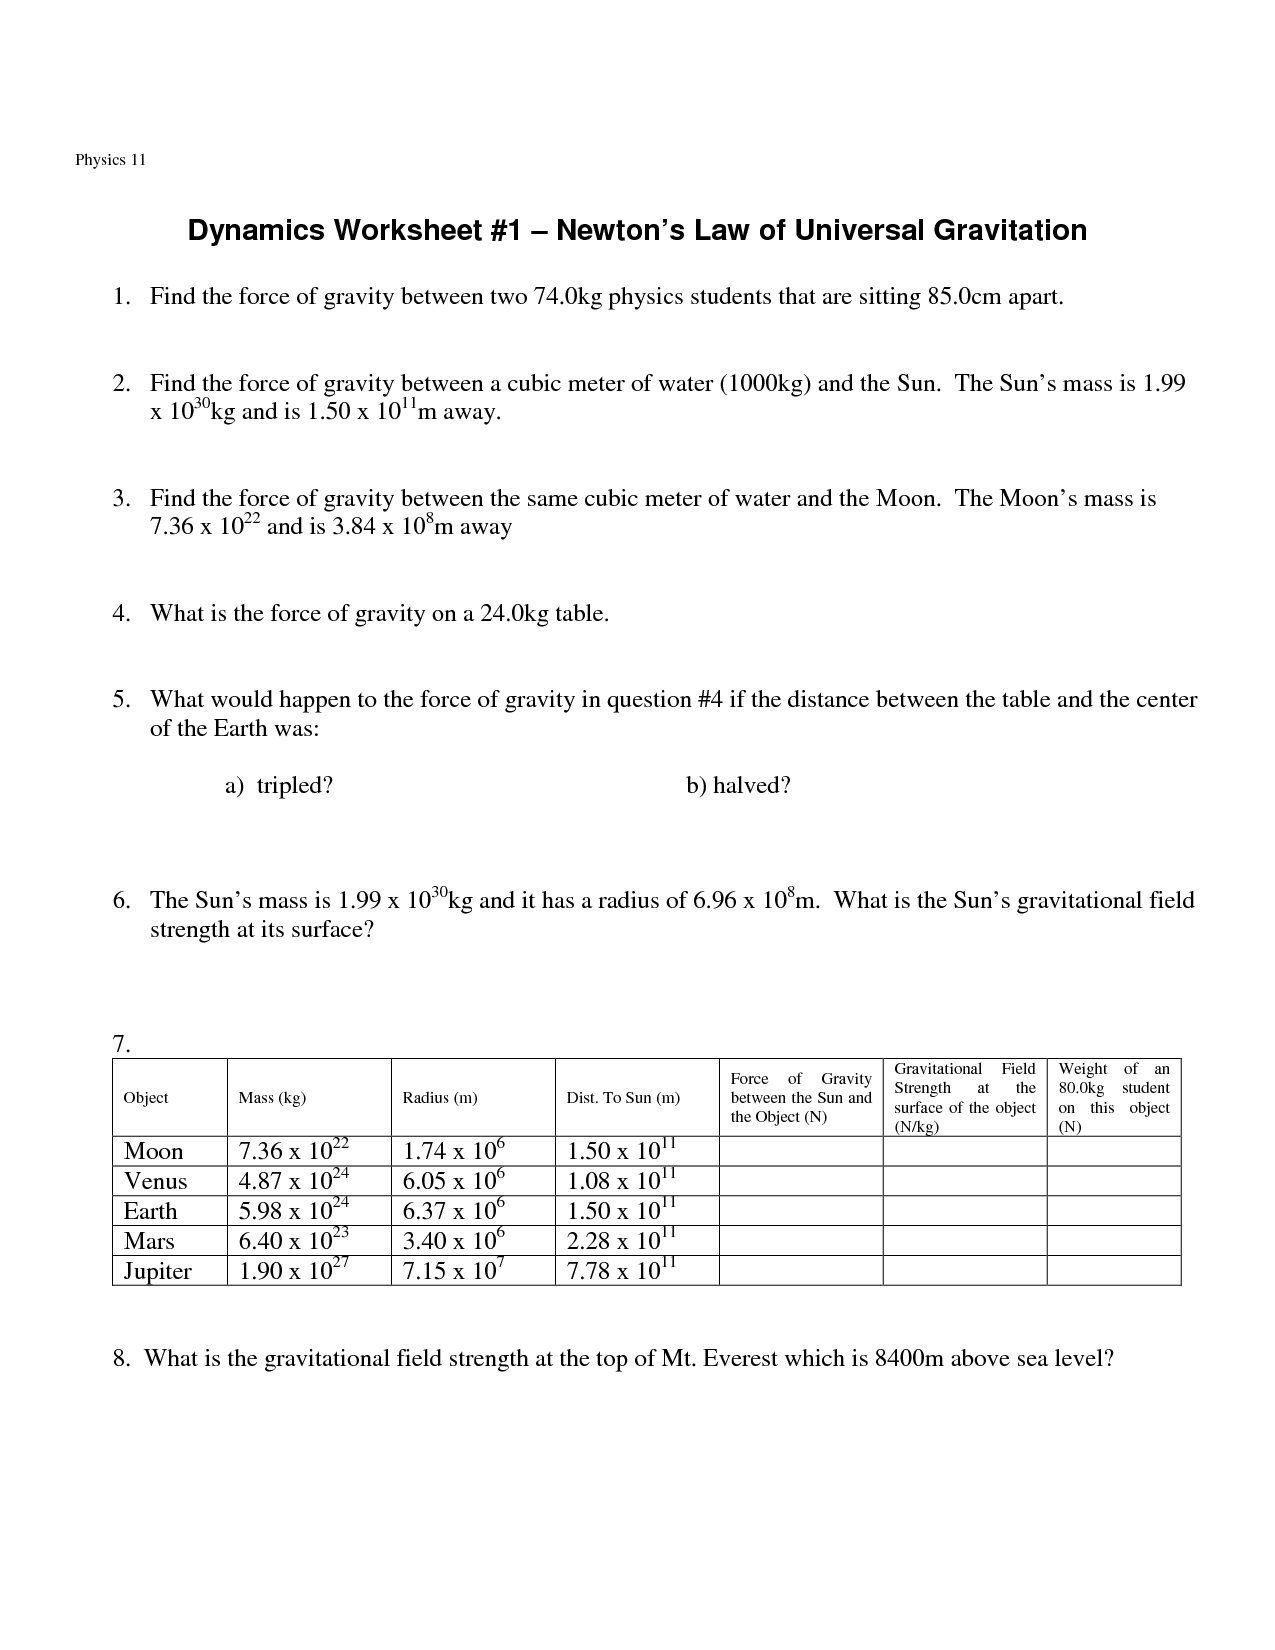 Law Of Universal Gravitation Worksheet Answers